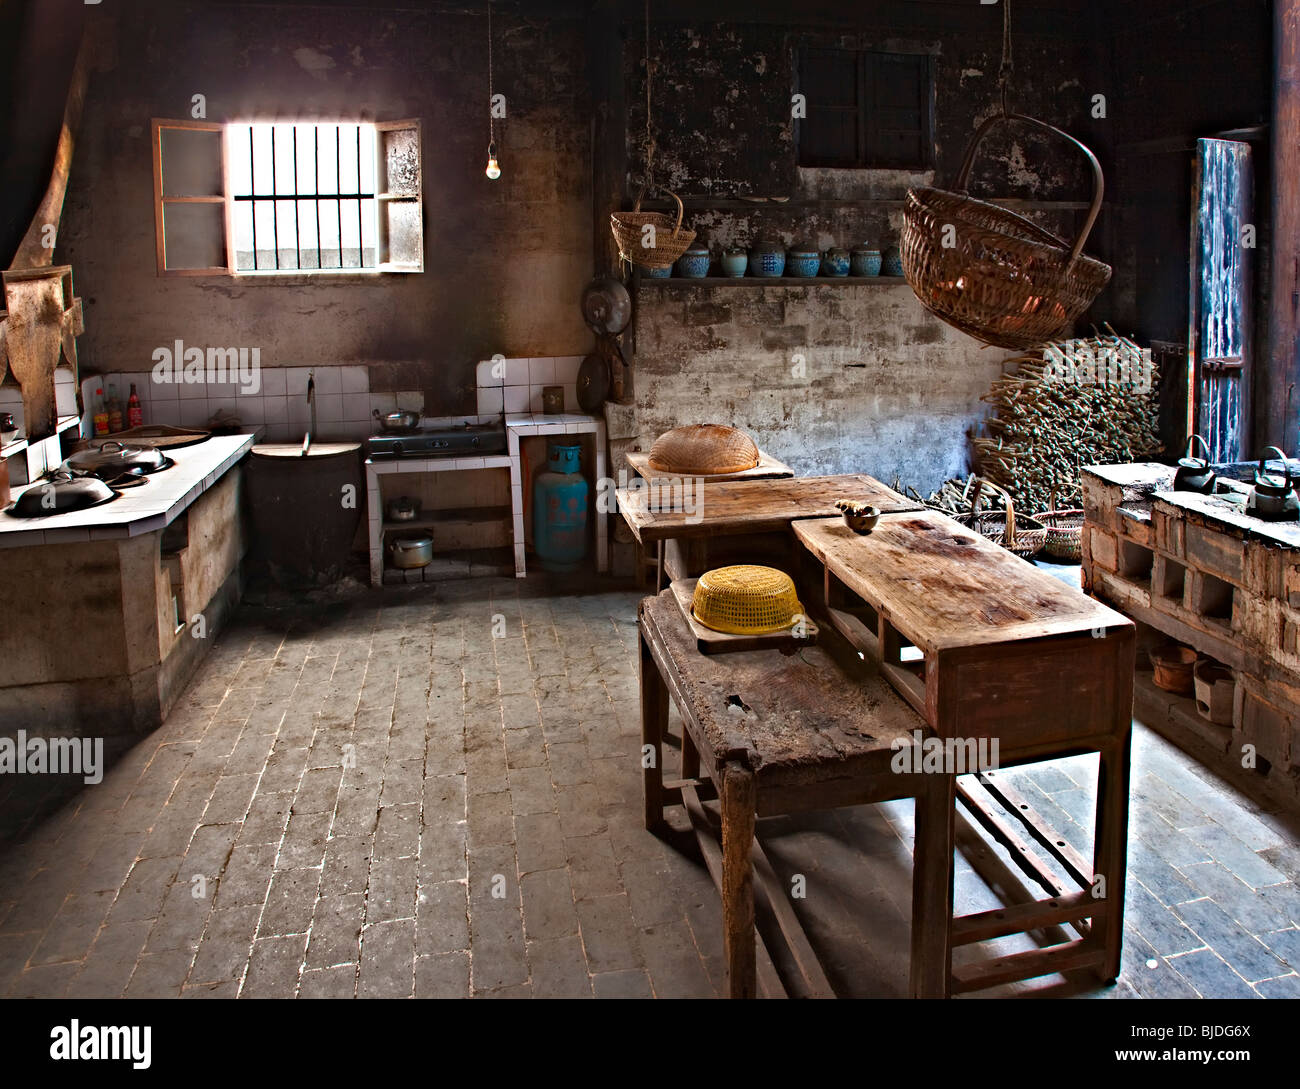 A Traditional Style Kitchen In A Residence At Rural